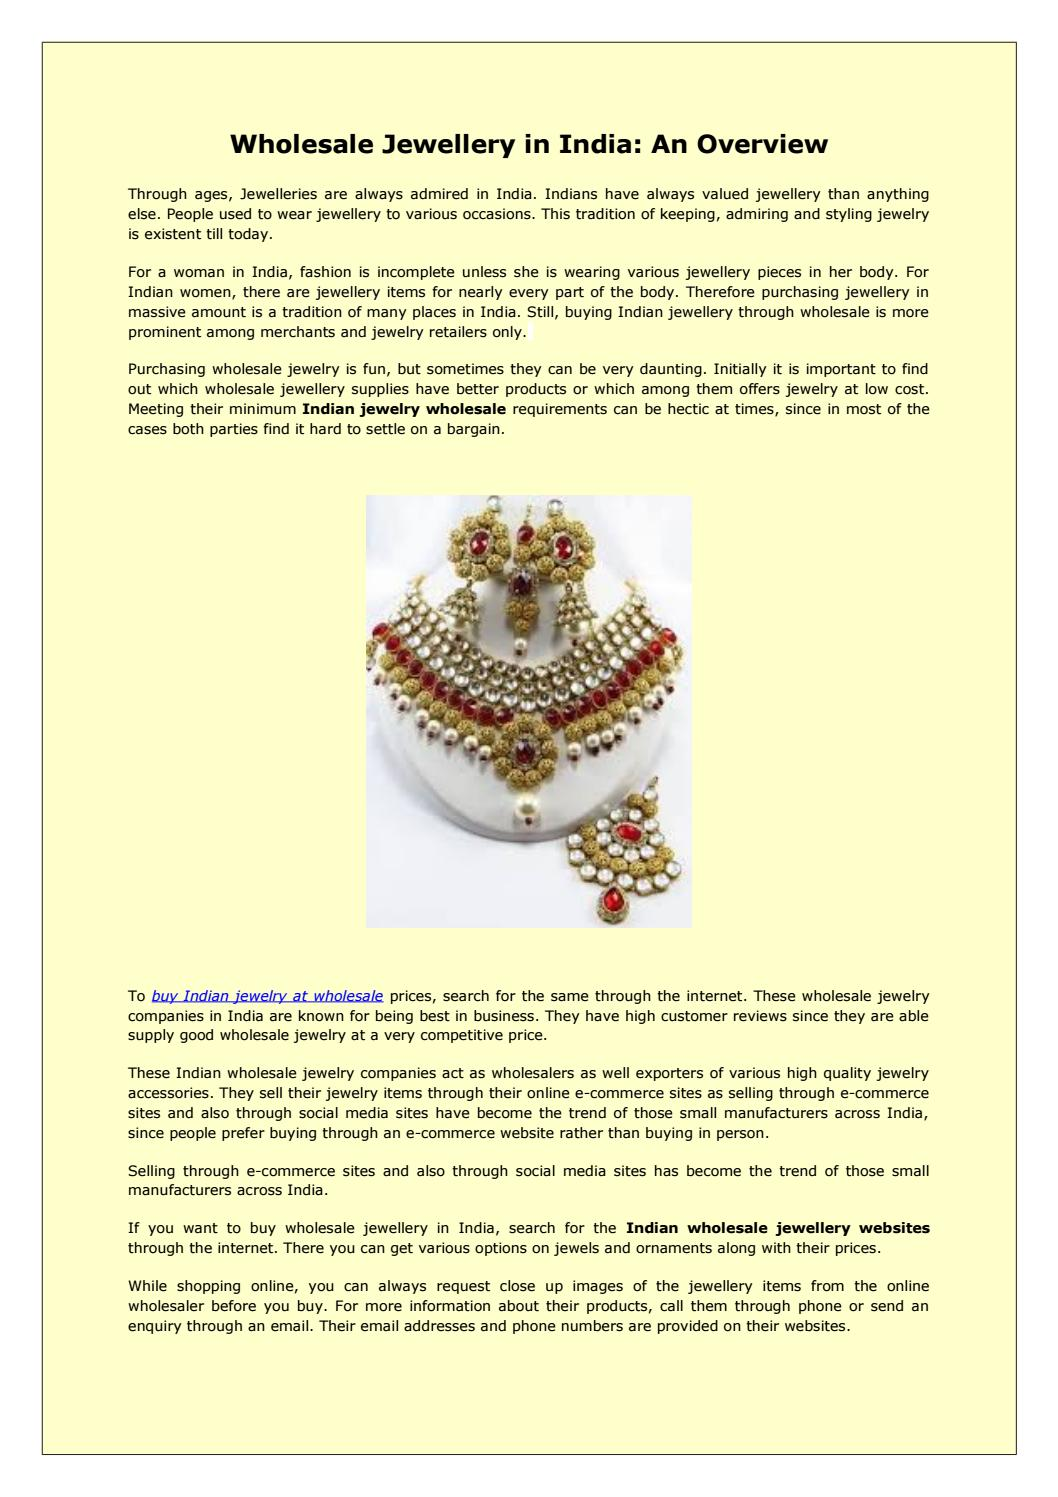 Wholesale Jewellery in India: An Overview! by Rajib Dam - issuu